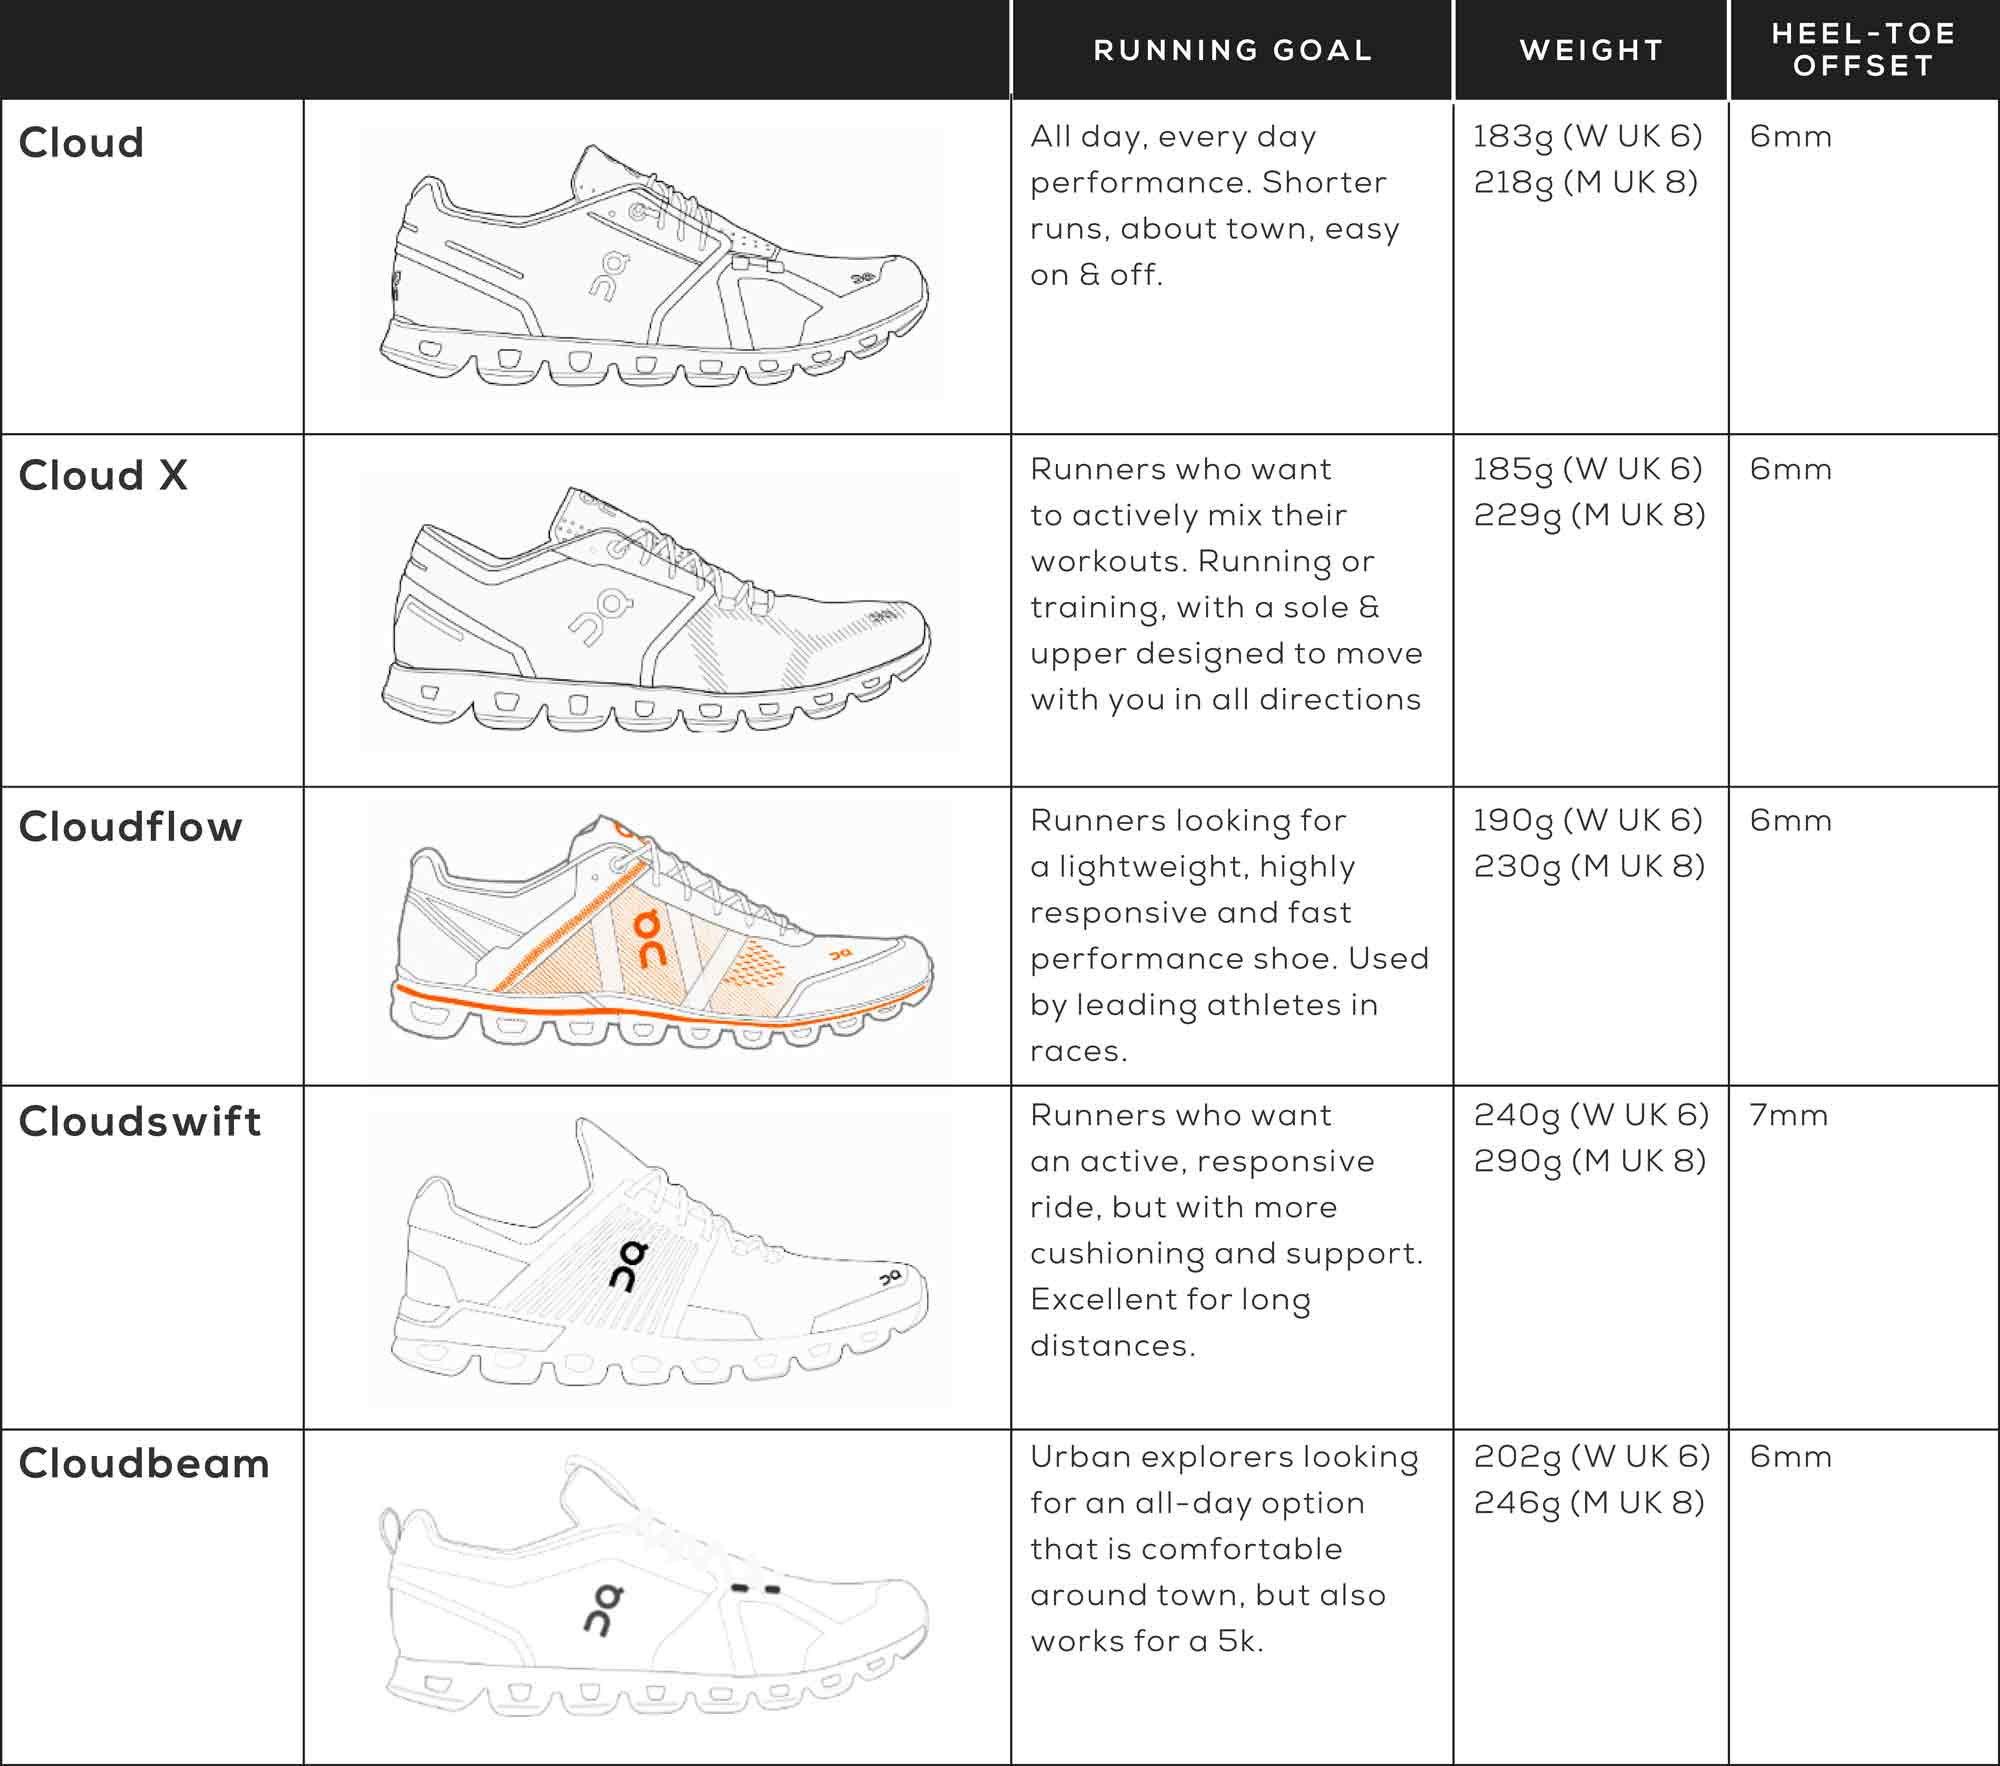 On Running Shoes Guide to Different Cloud Styles